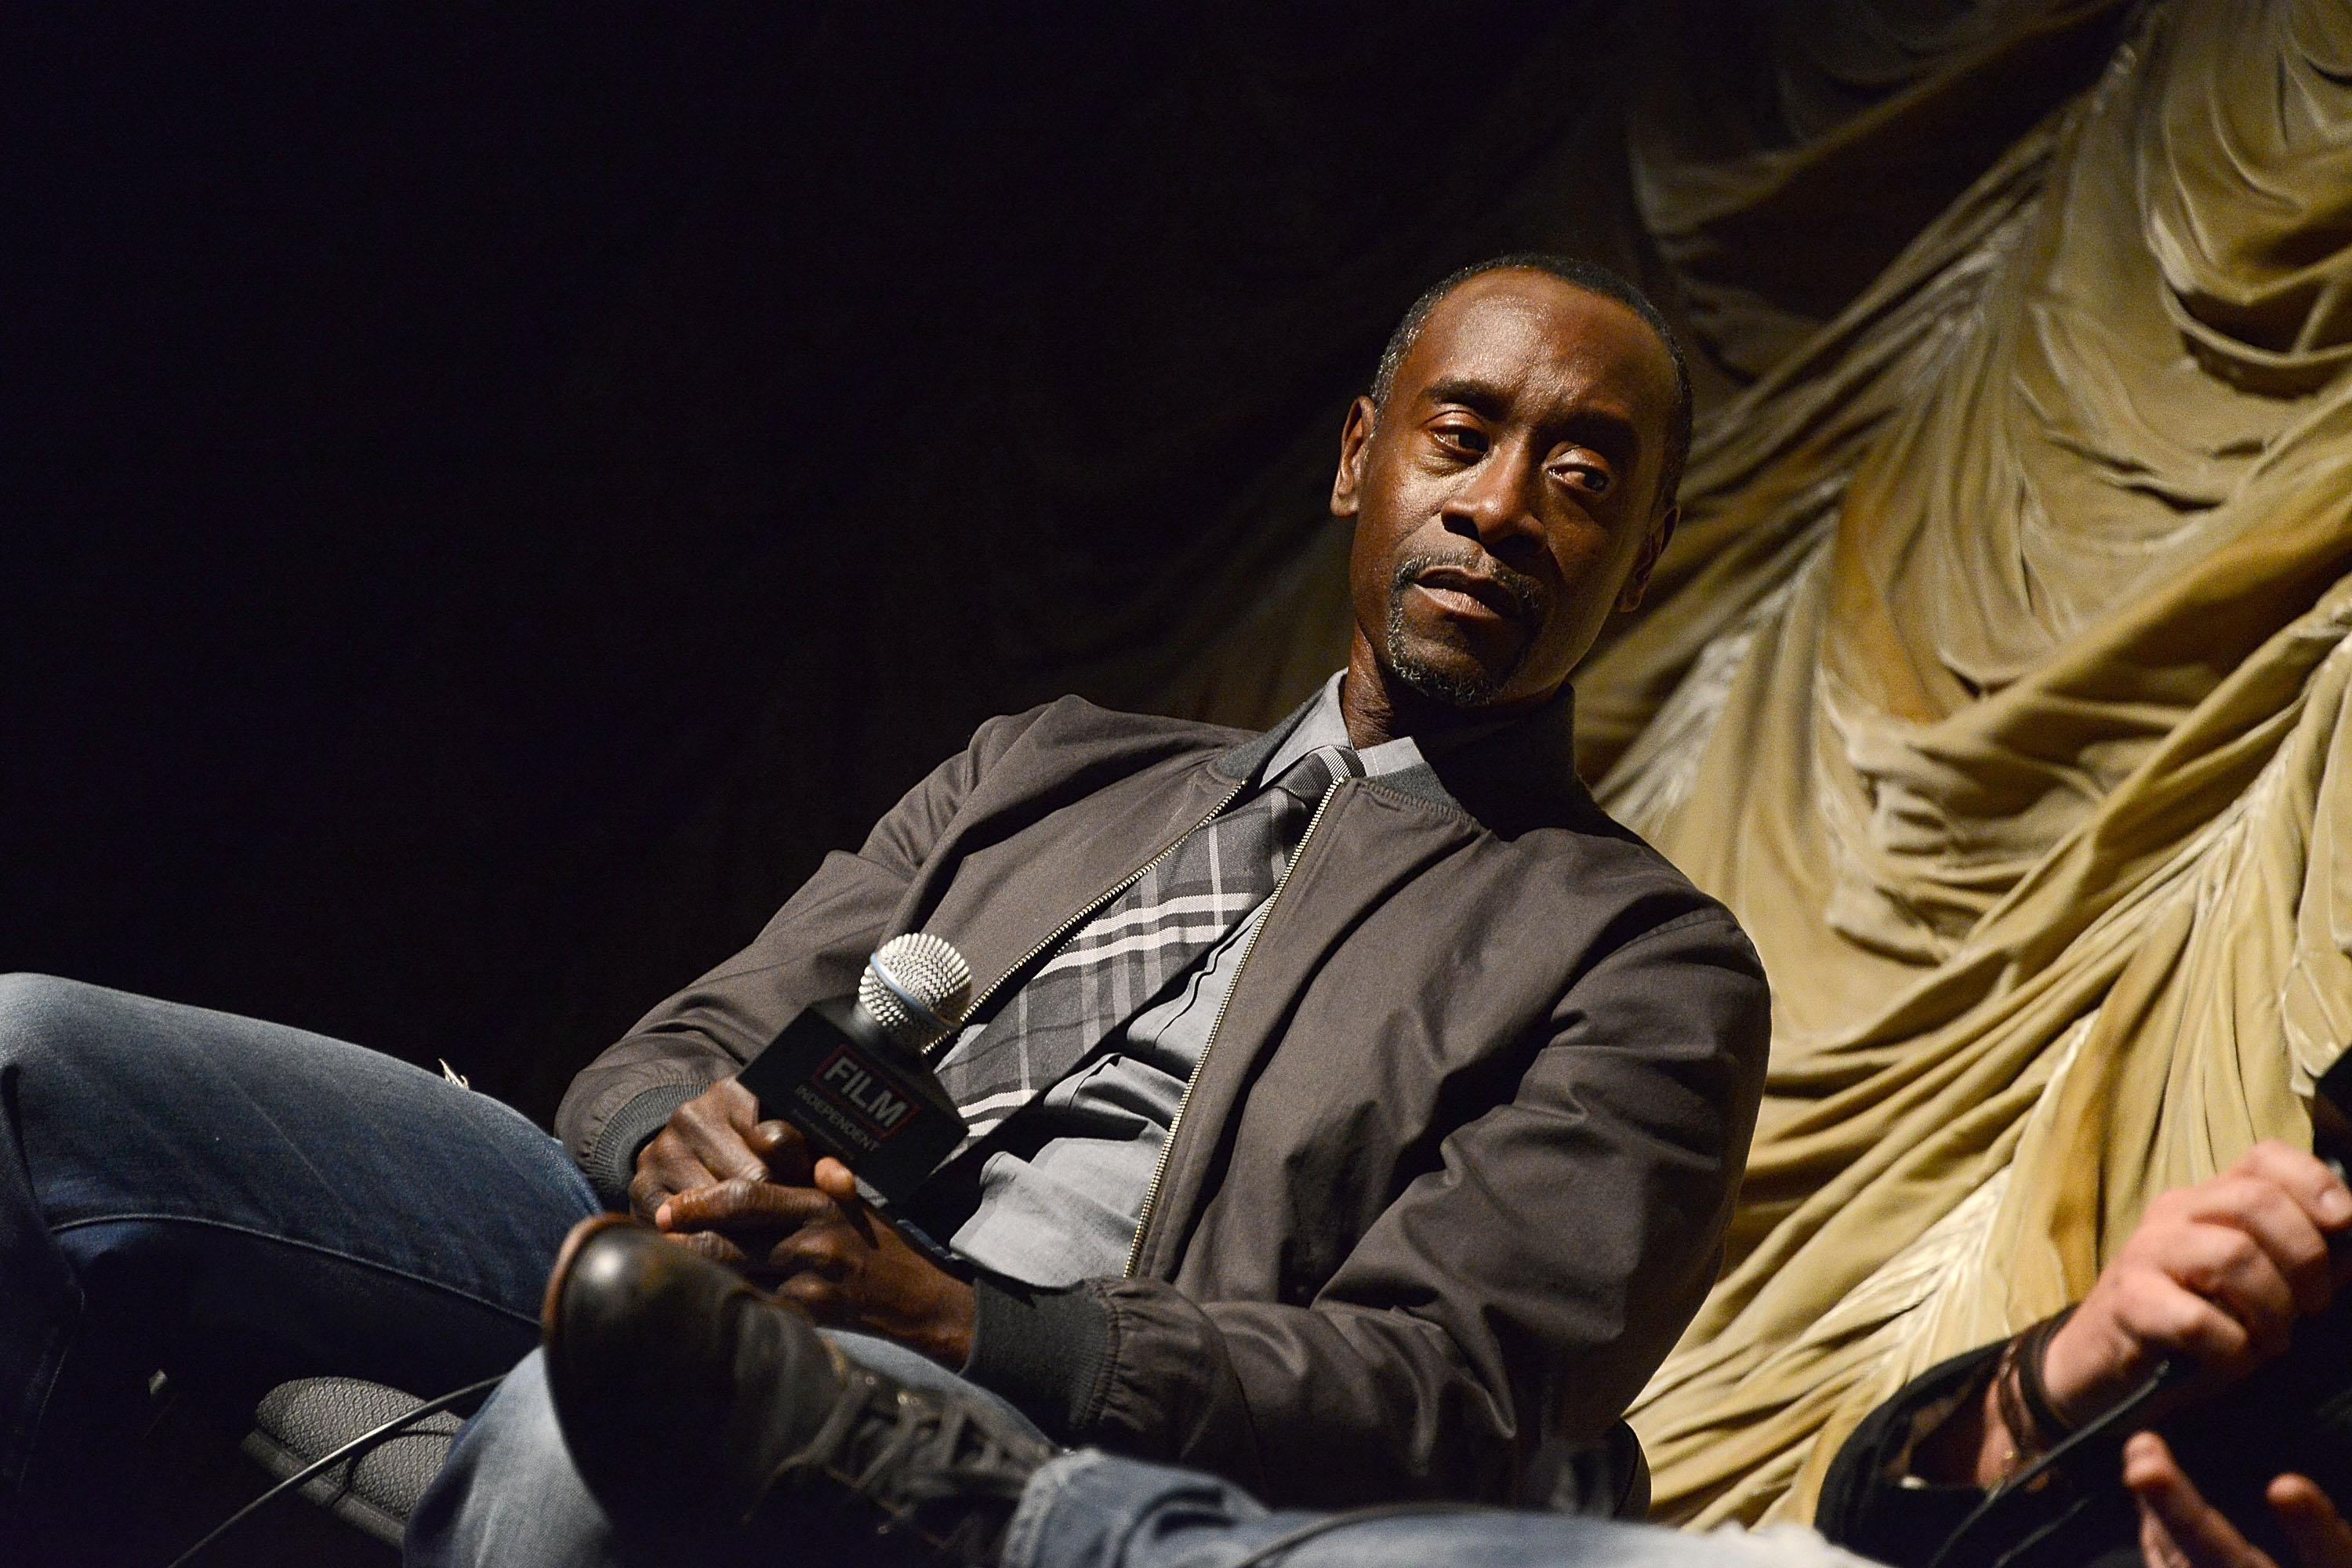 Film Independent At LACMA Screening Of 'House Of Lies' With Creator Matthew Carnahan And Star/Co-Executive Producer Don Cheadle